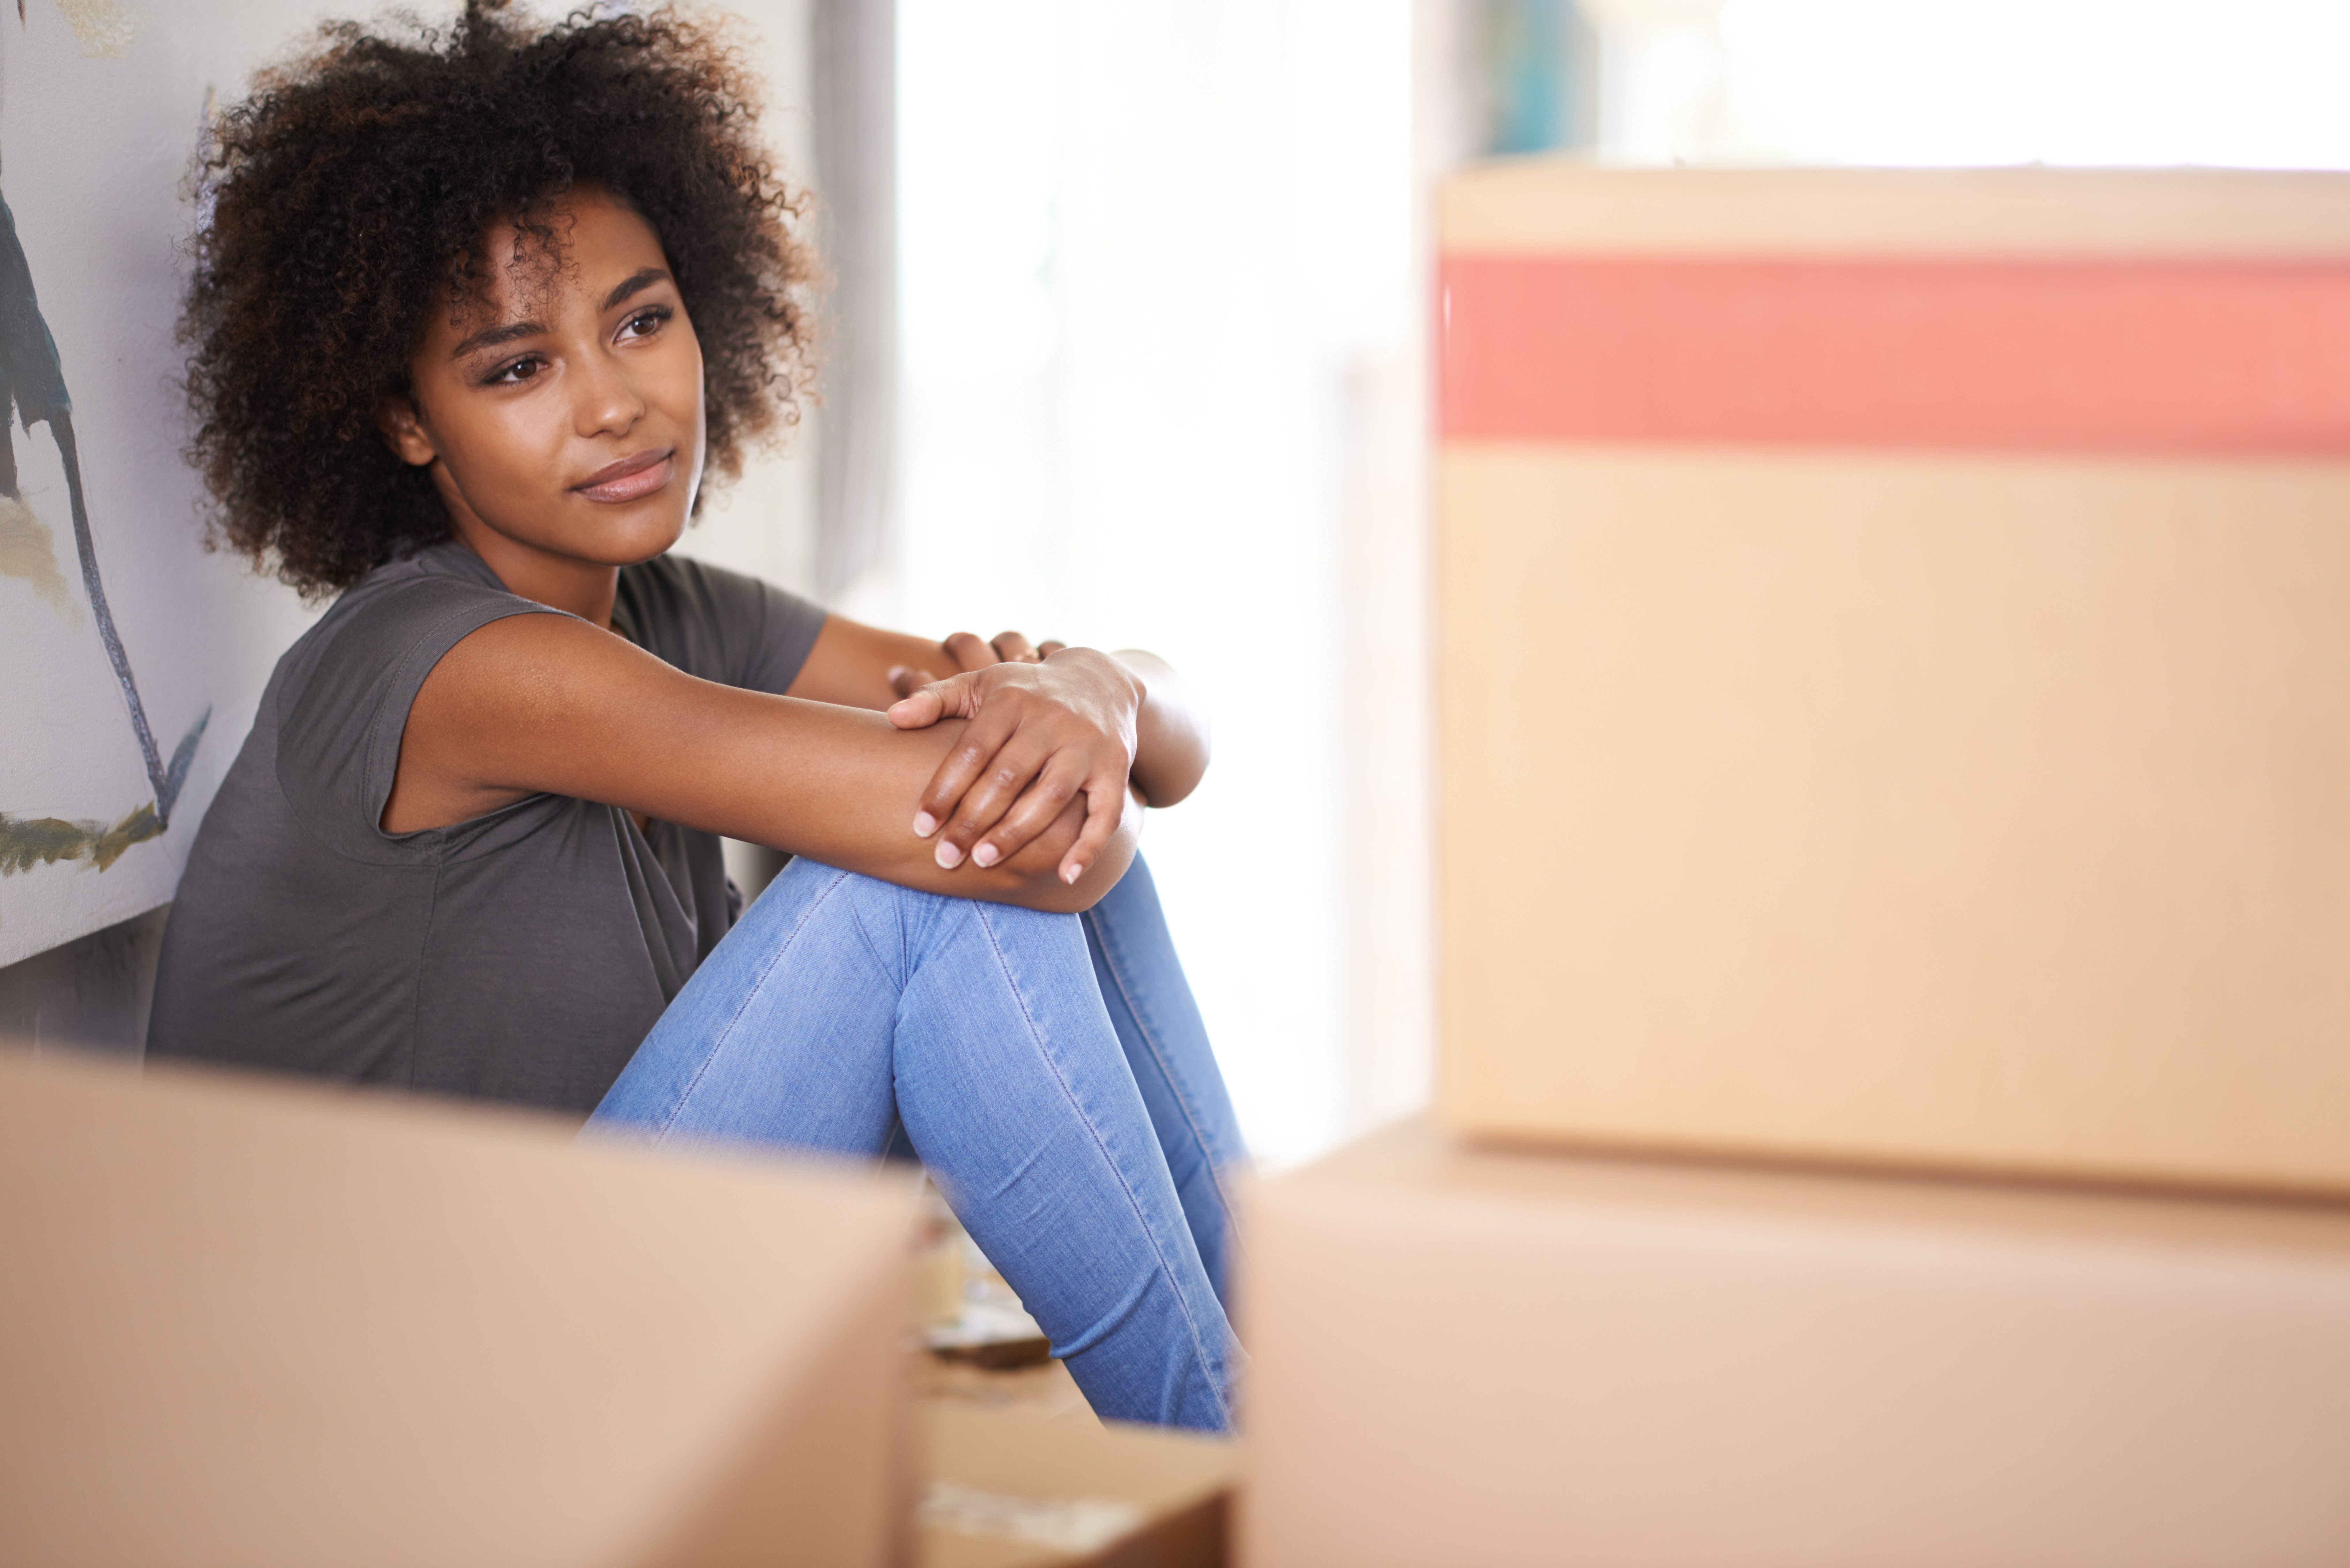 Shot of an attractive young woman feeling nostalgic while sitting amongst packed boxes